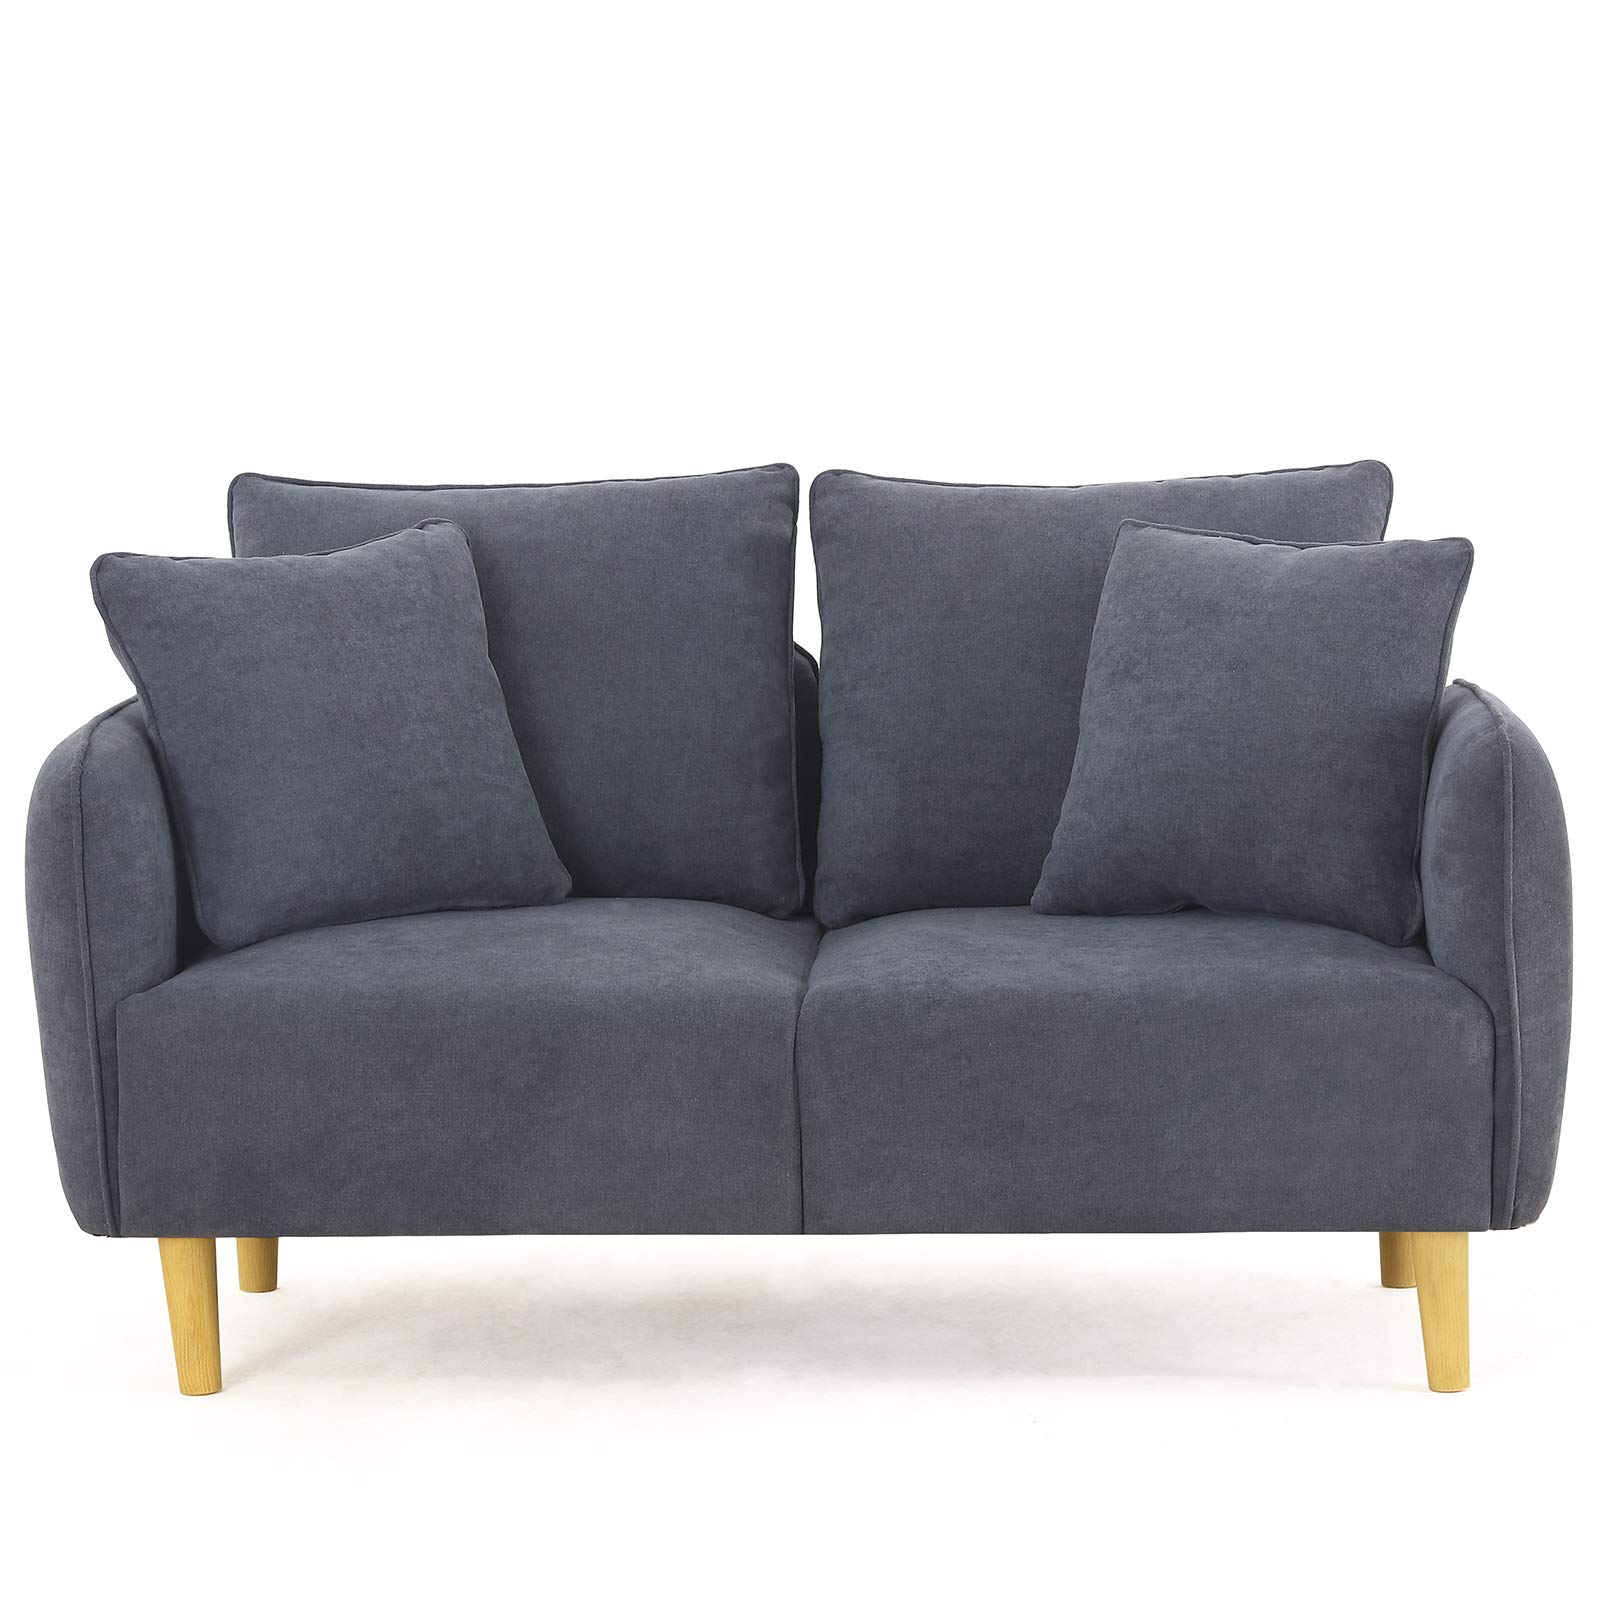 Unihome Fabric 2 Seat Sofa Love Seat Upholstered Couch Loveseat, Wooden Love Sofa for Small Space, Dark Bluish Grey by Unihome